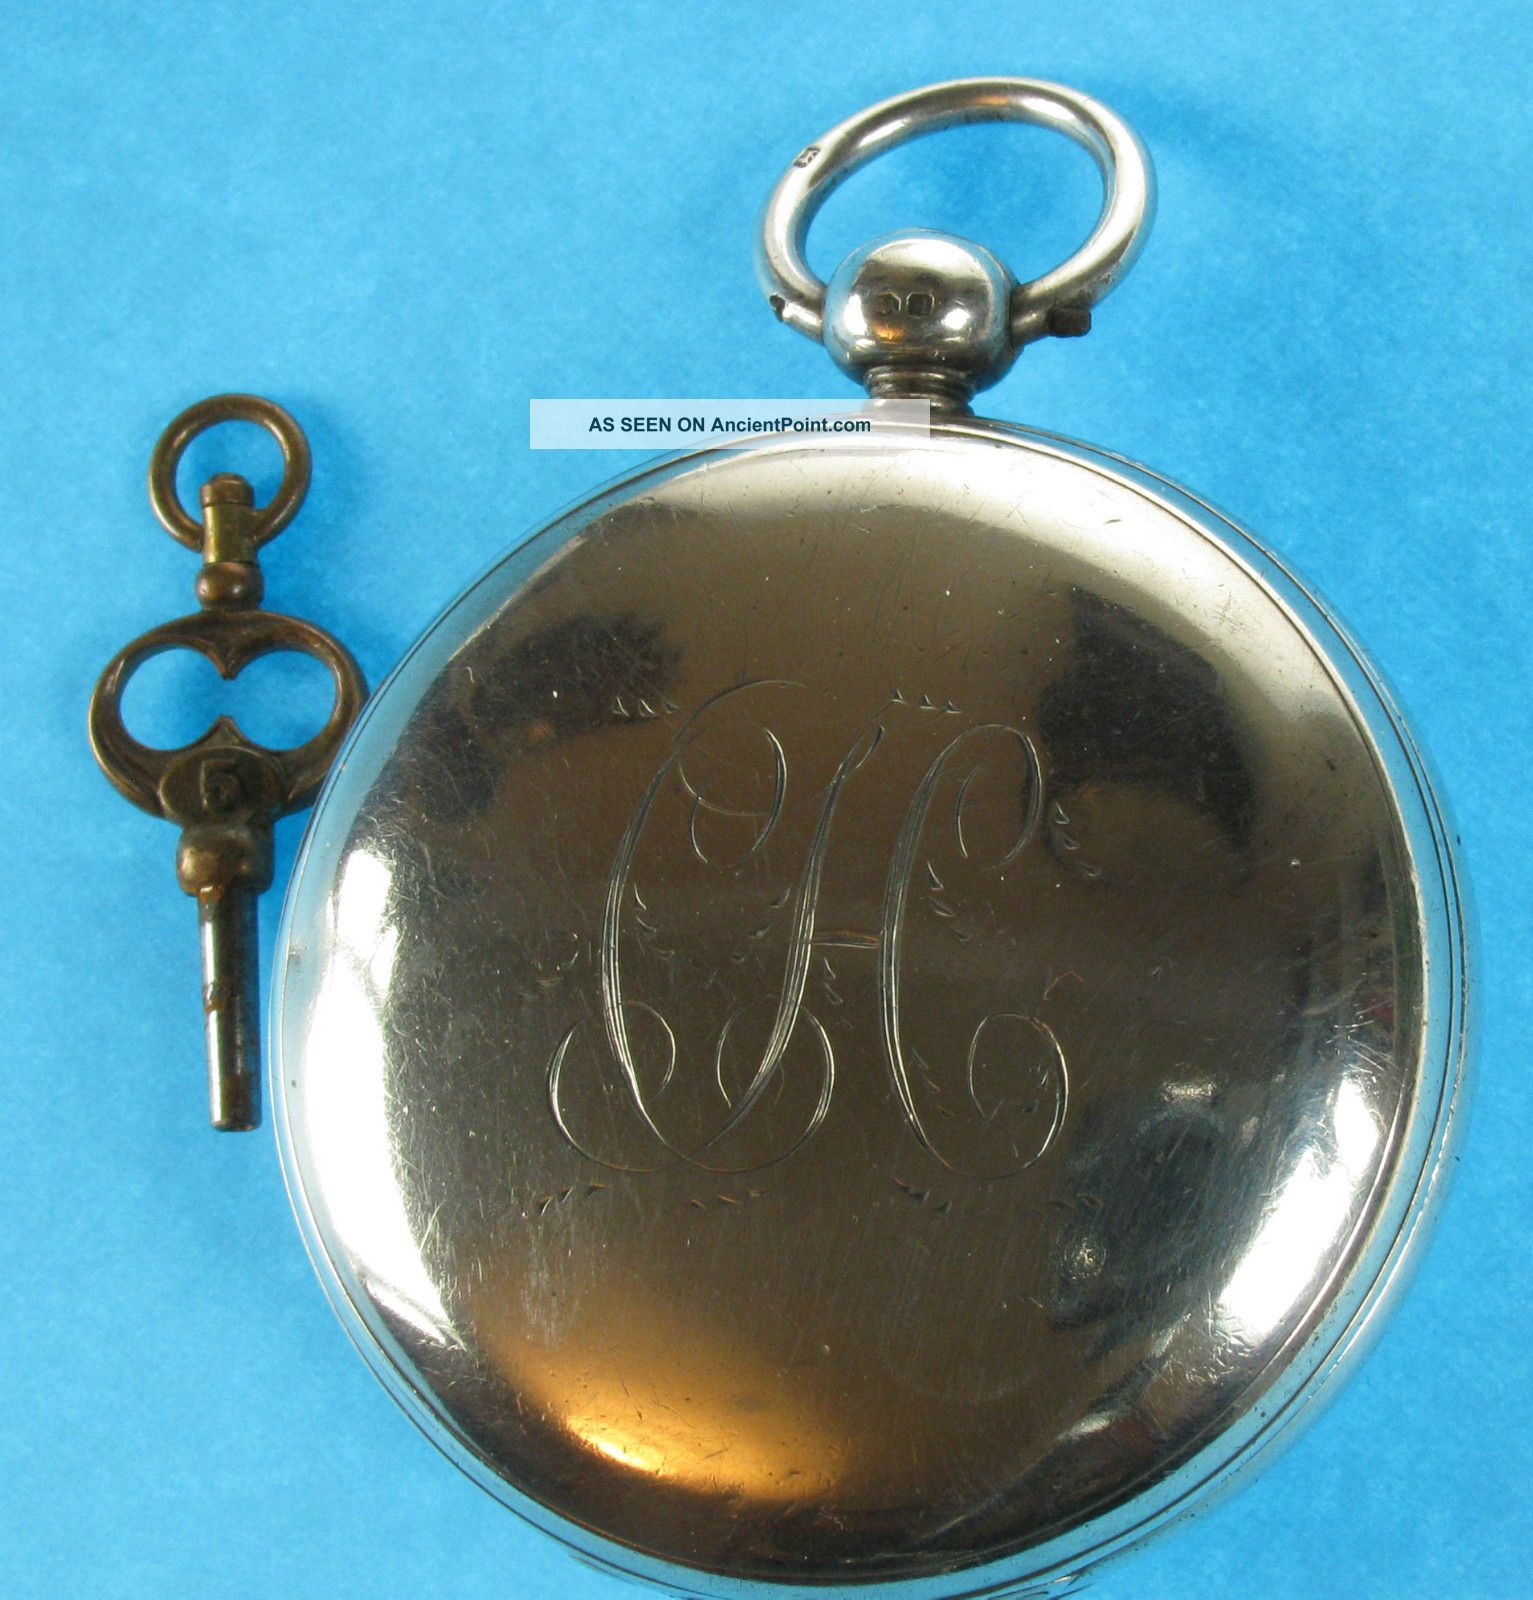 Antique English Full Hunter Silver Pocket Watch C1828 Pocket Watches/ Chains/ Fobs photo